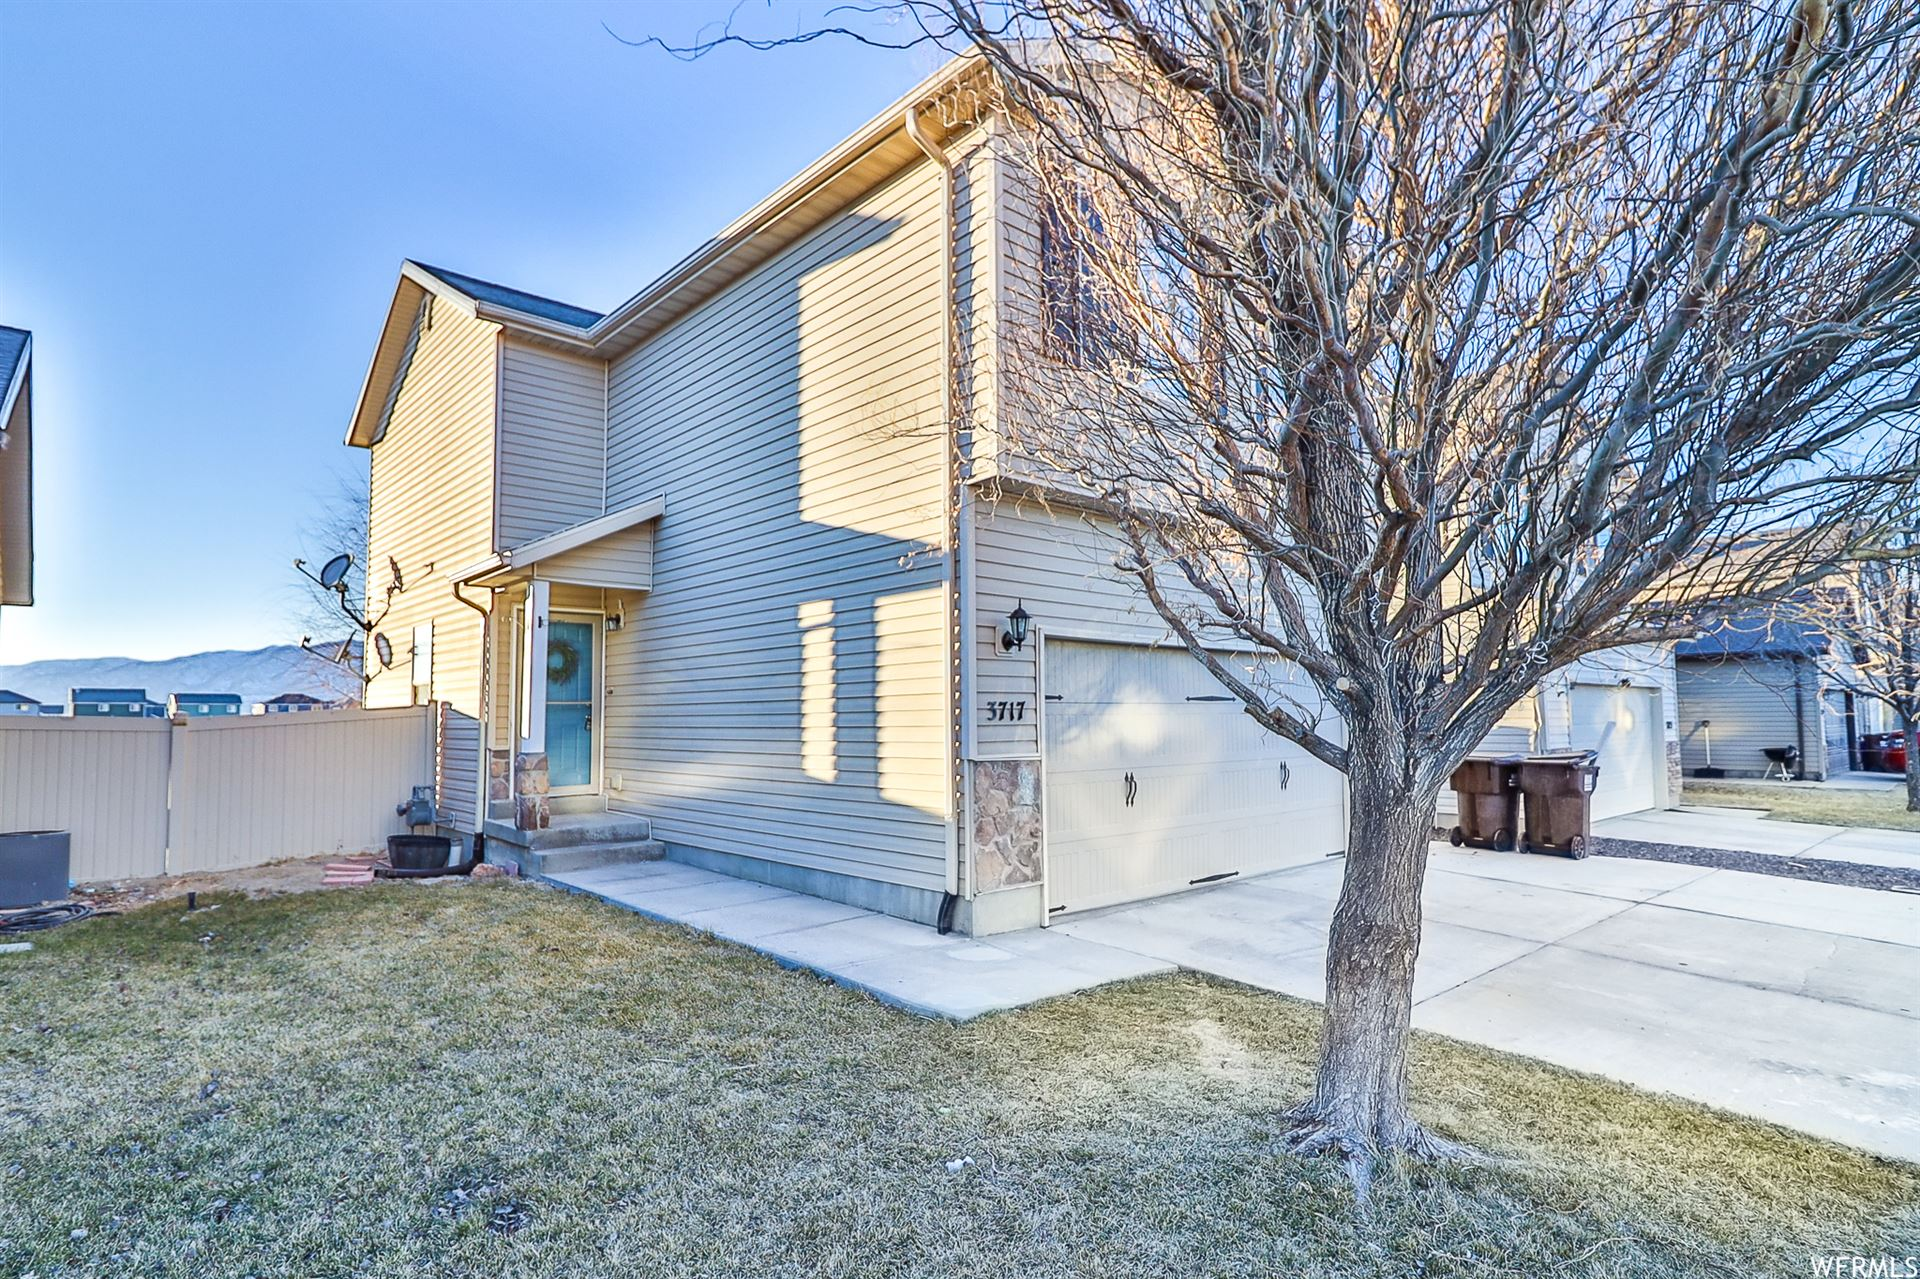 Photo of 3717 N TUMWATER WEST W DR, Eagle Mountain, UT 84005 (MLS # 1726471)